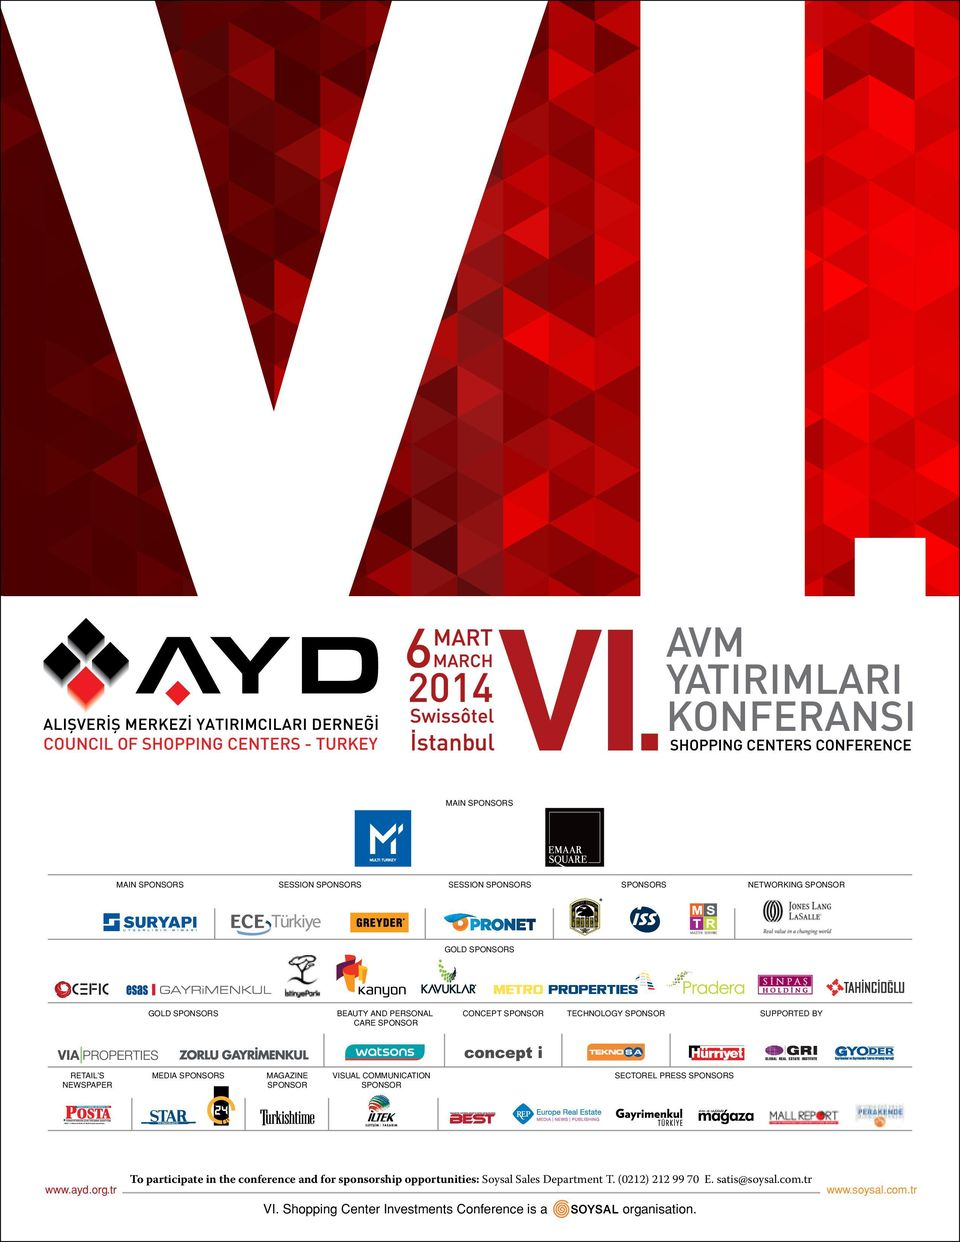 MEDIA SPONSORS MAGAZINE SPONSOR VISUAL COMMUNICATION SPONSOR SECTOREL PRESS SPONSORS To participate in the